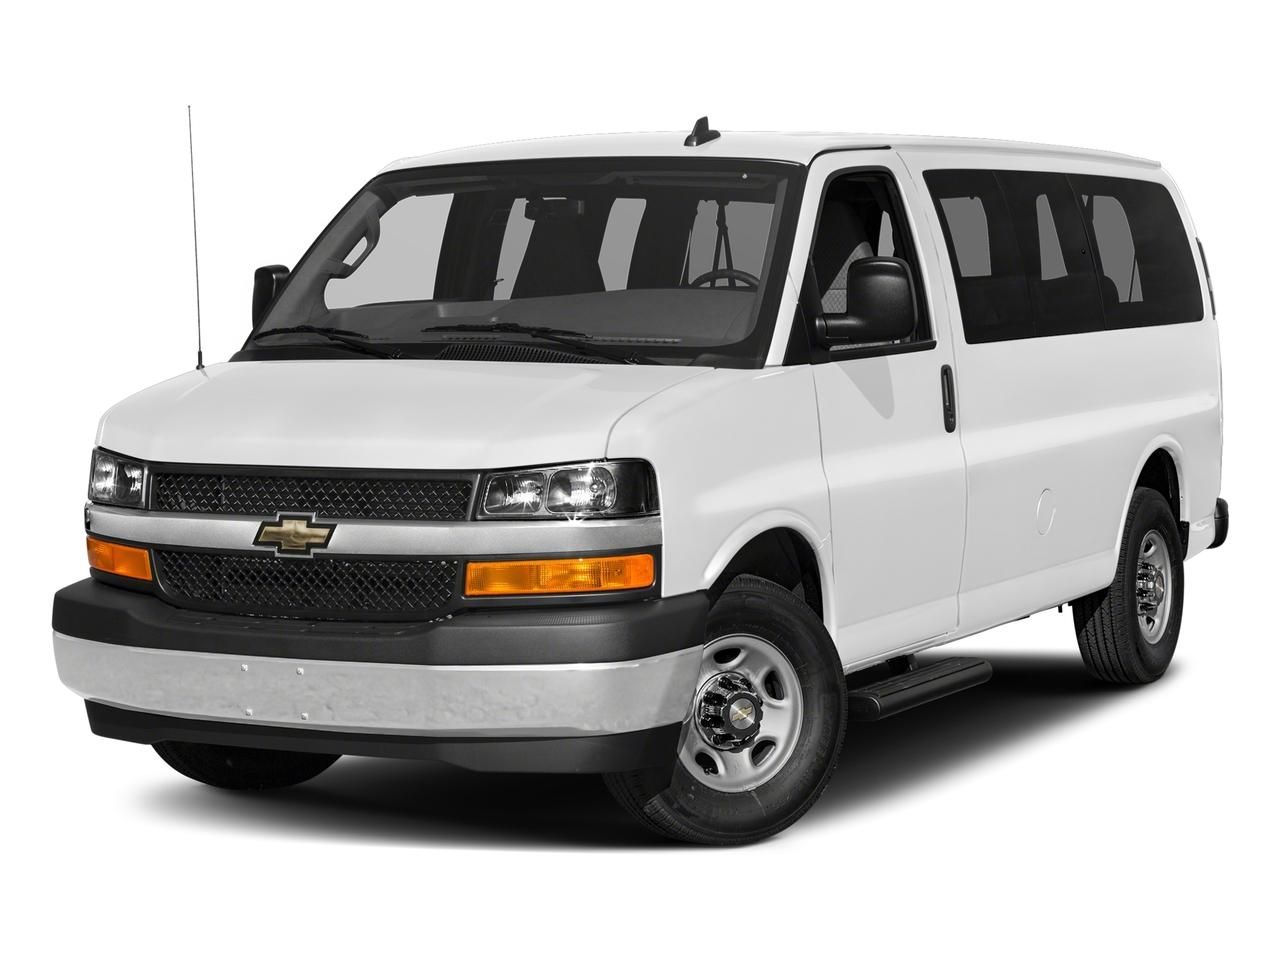 2018 Chevrolet Express Passenger Vehicle Photo in Danbury, CT 06810